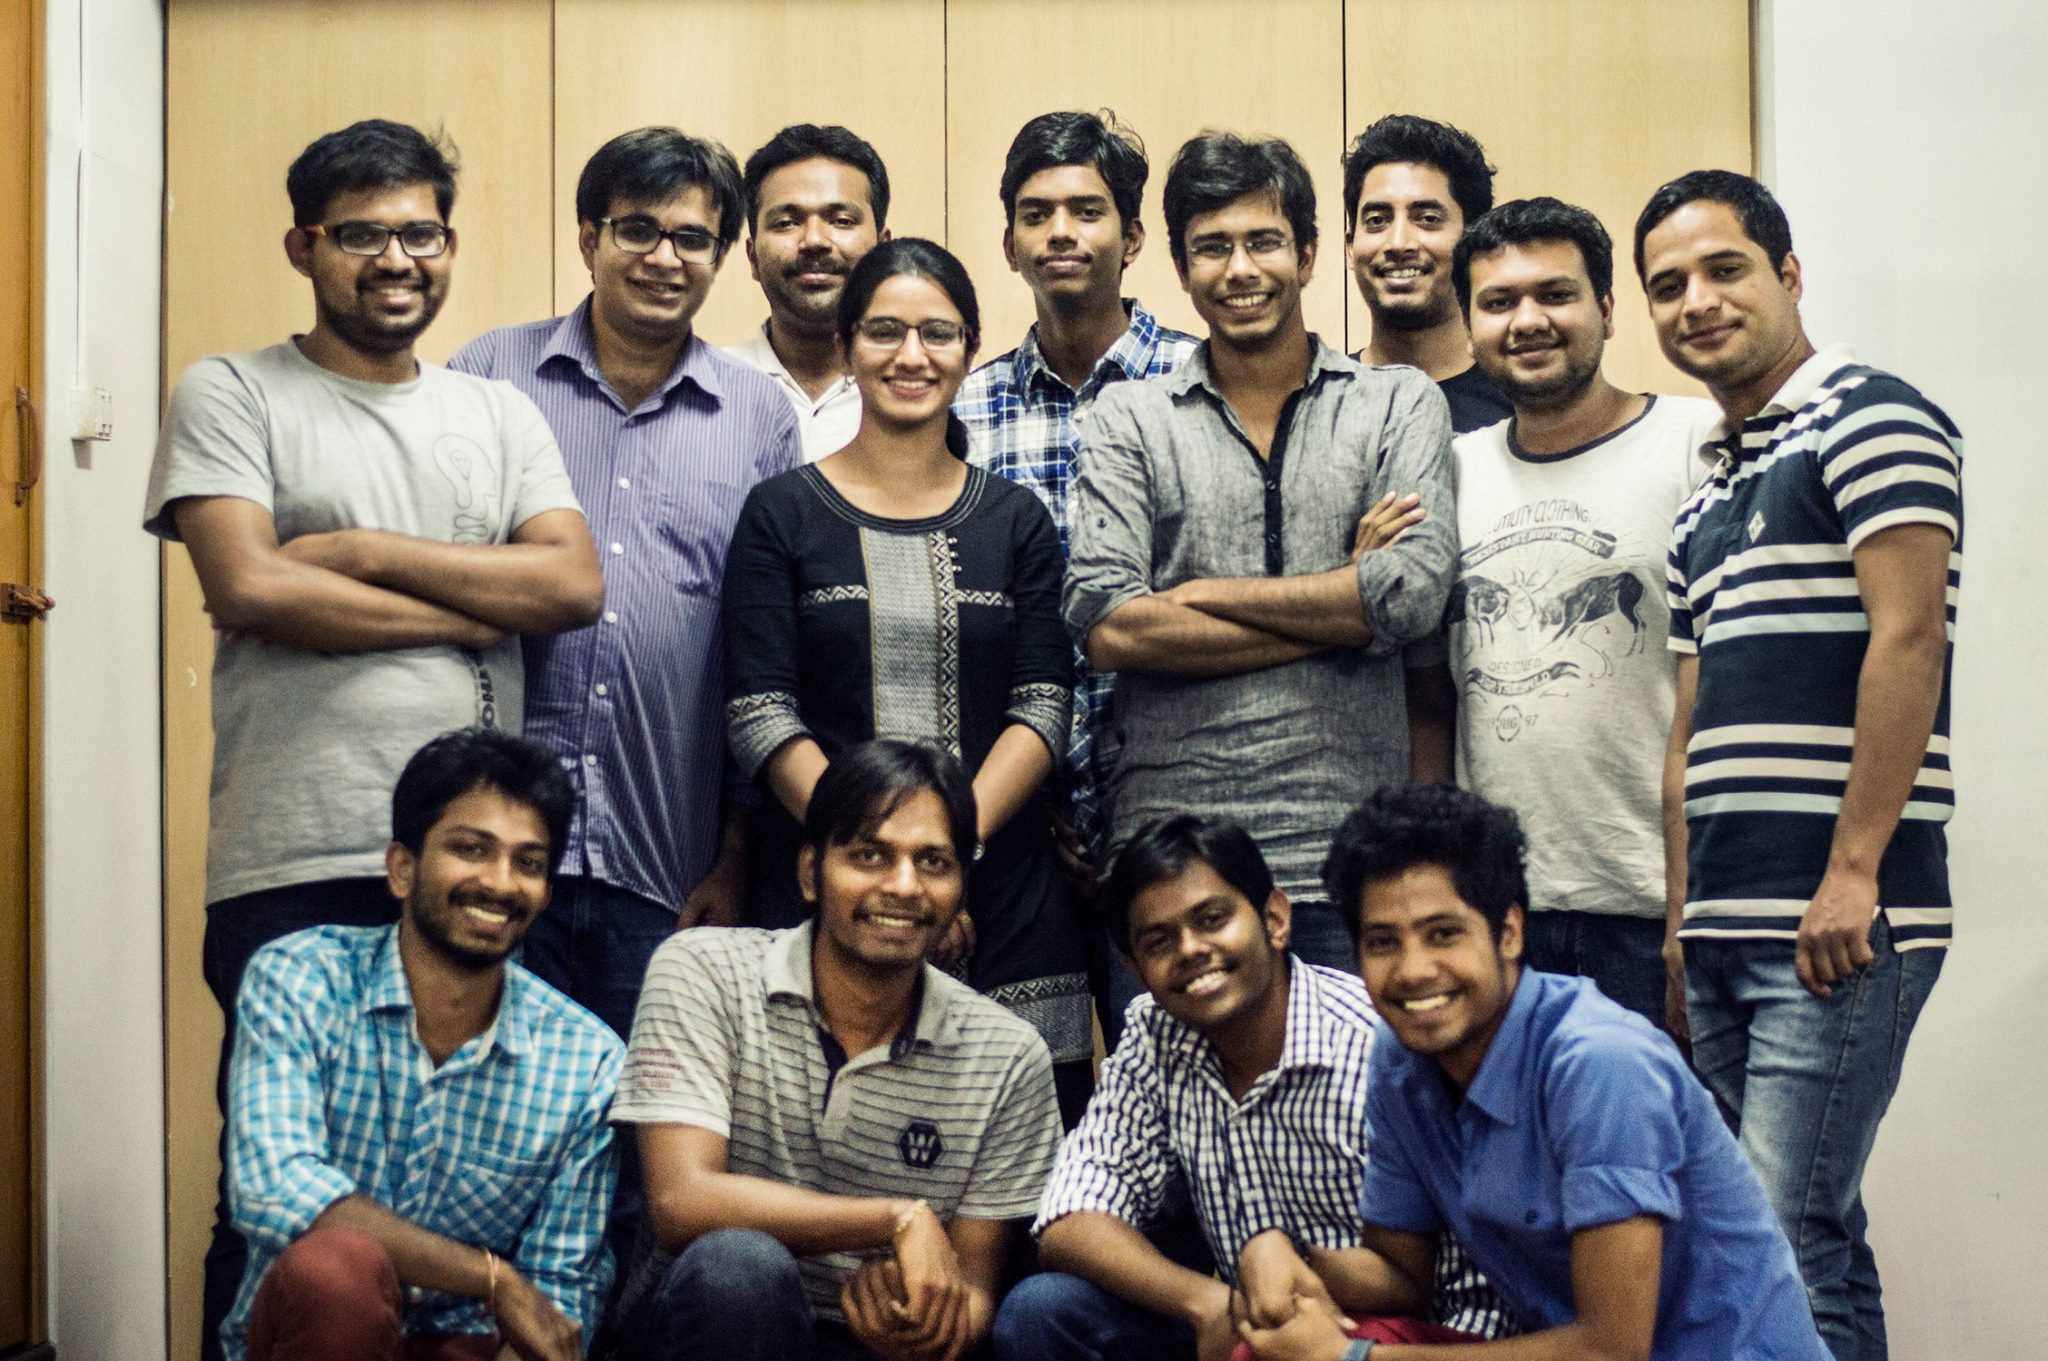 Bangalore-Based AI Company Now Delivering N95 Masks To Fight Against The Spread of COVID-19